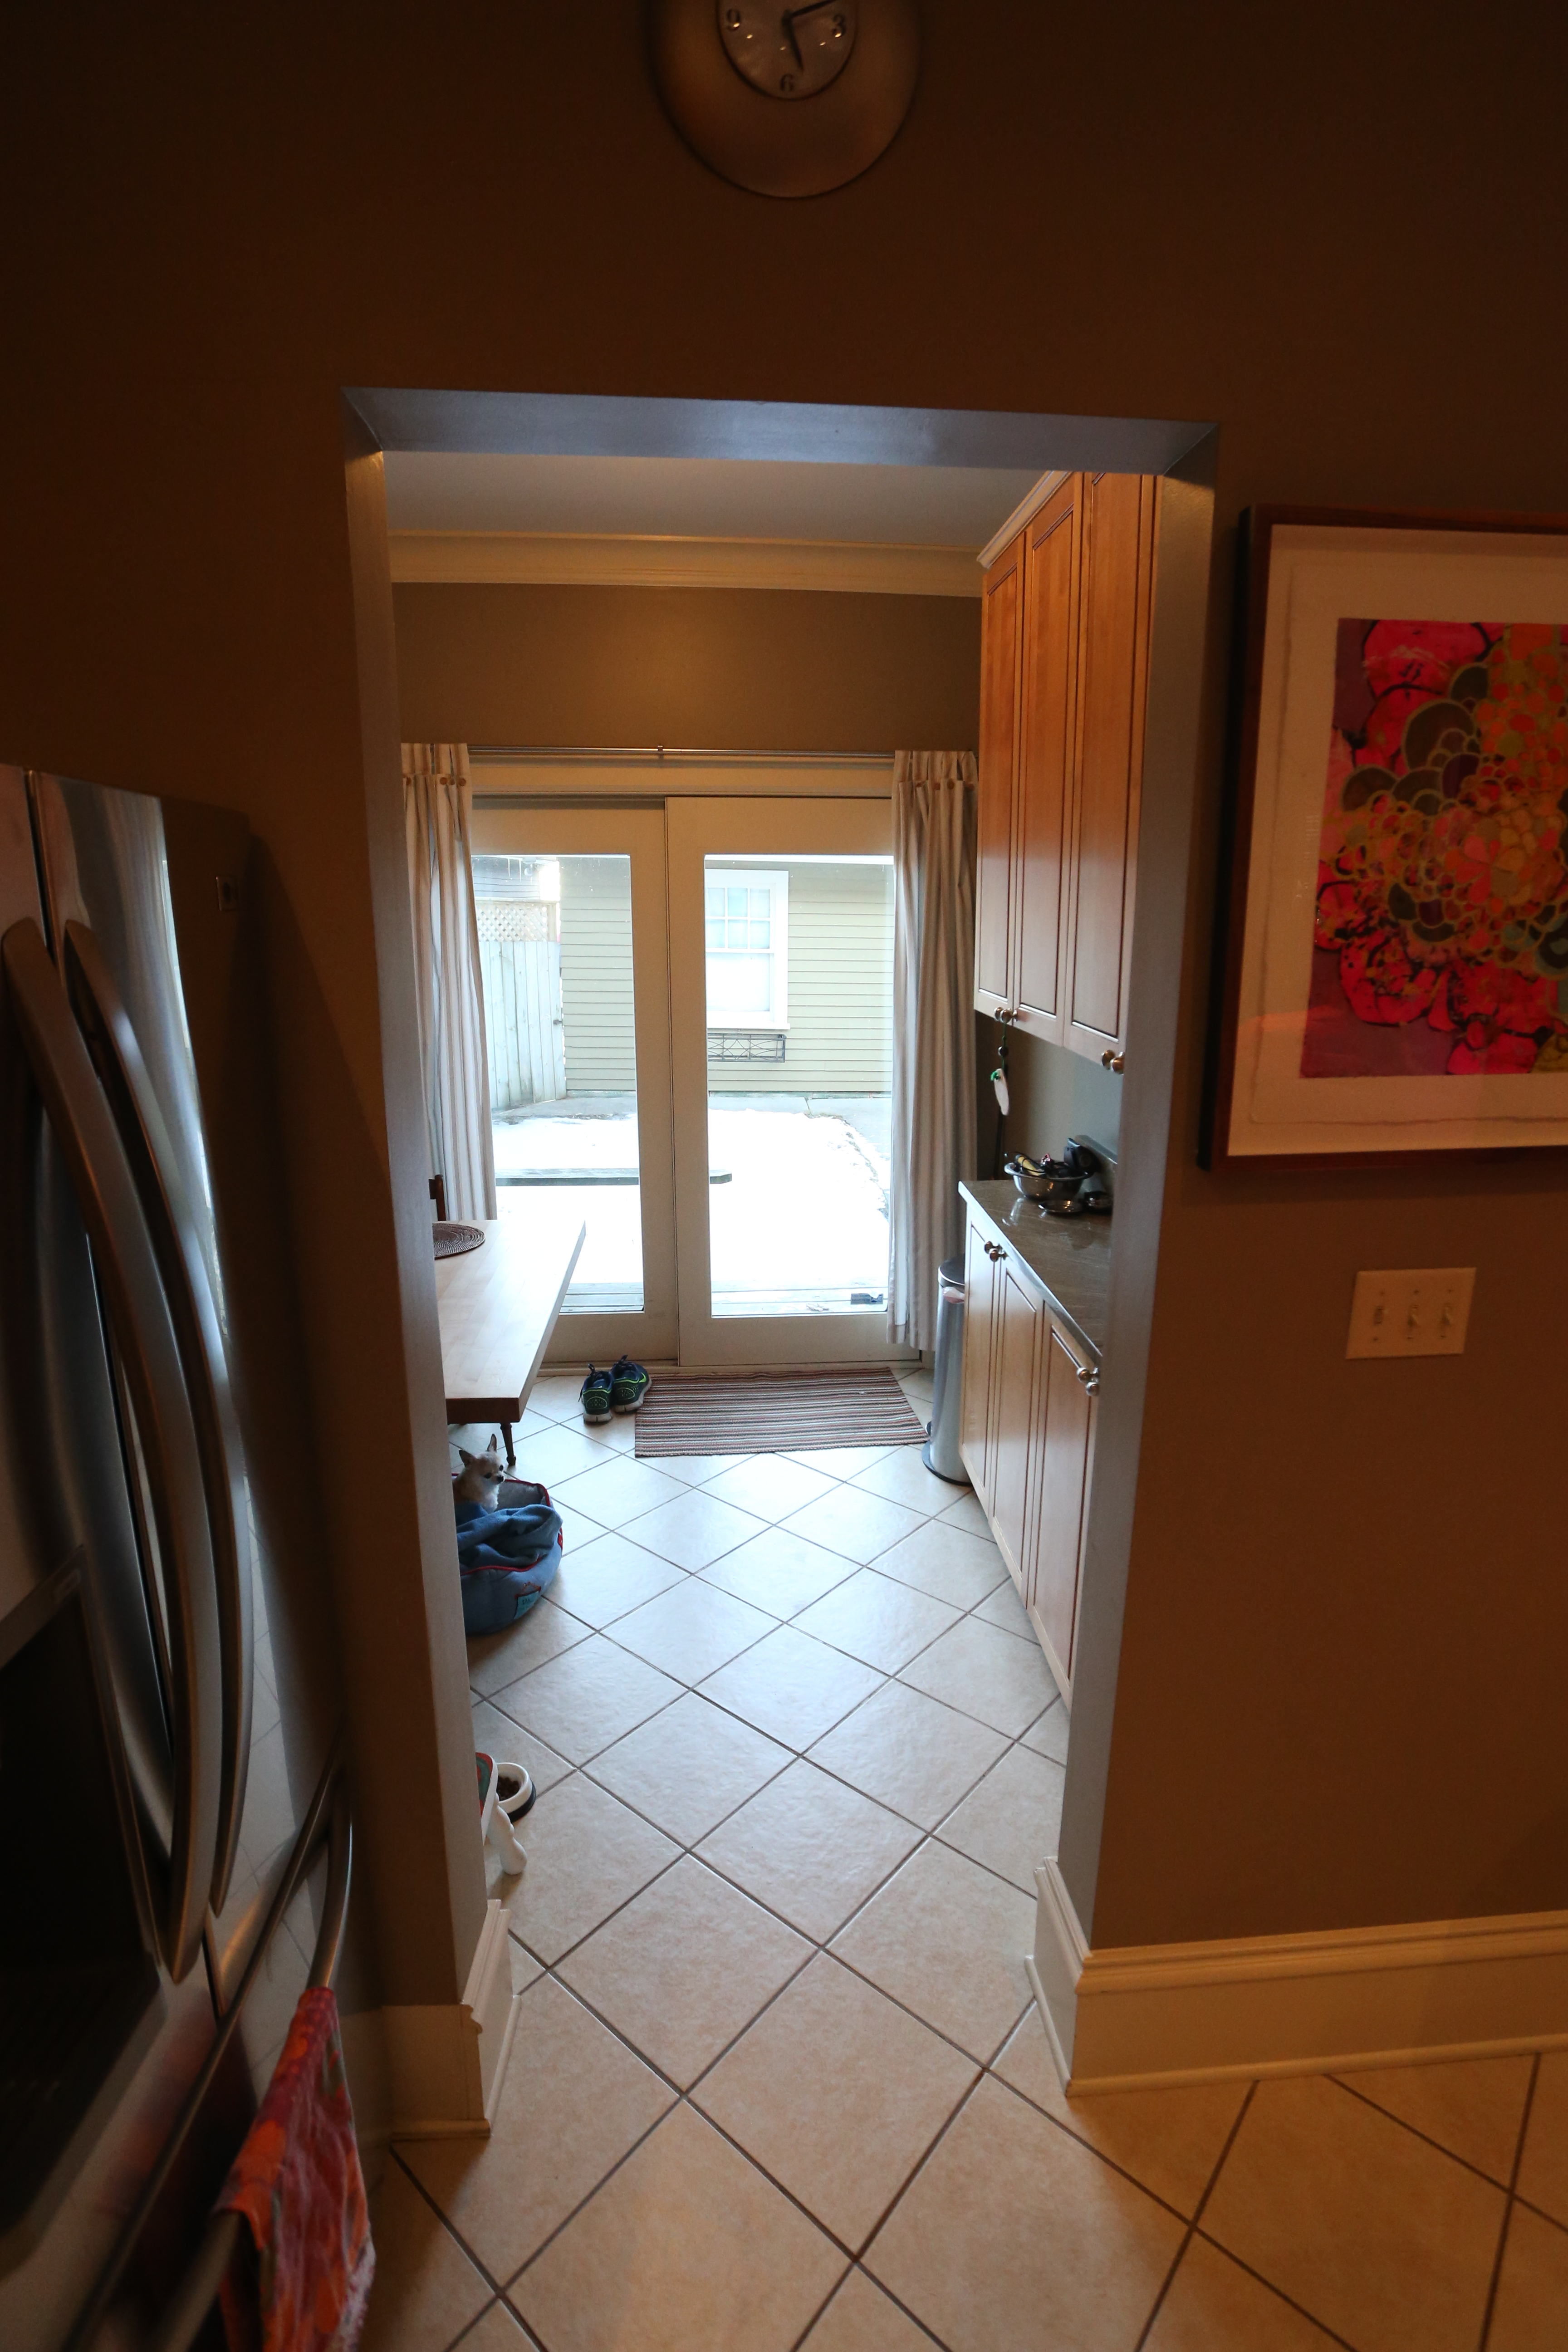 Kitchen looking into small patio room